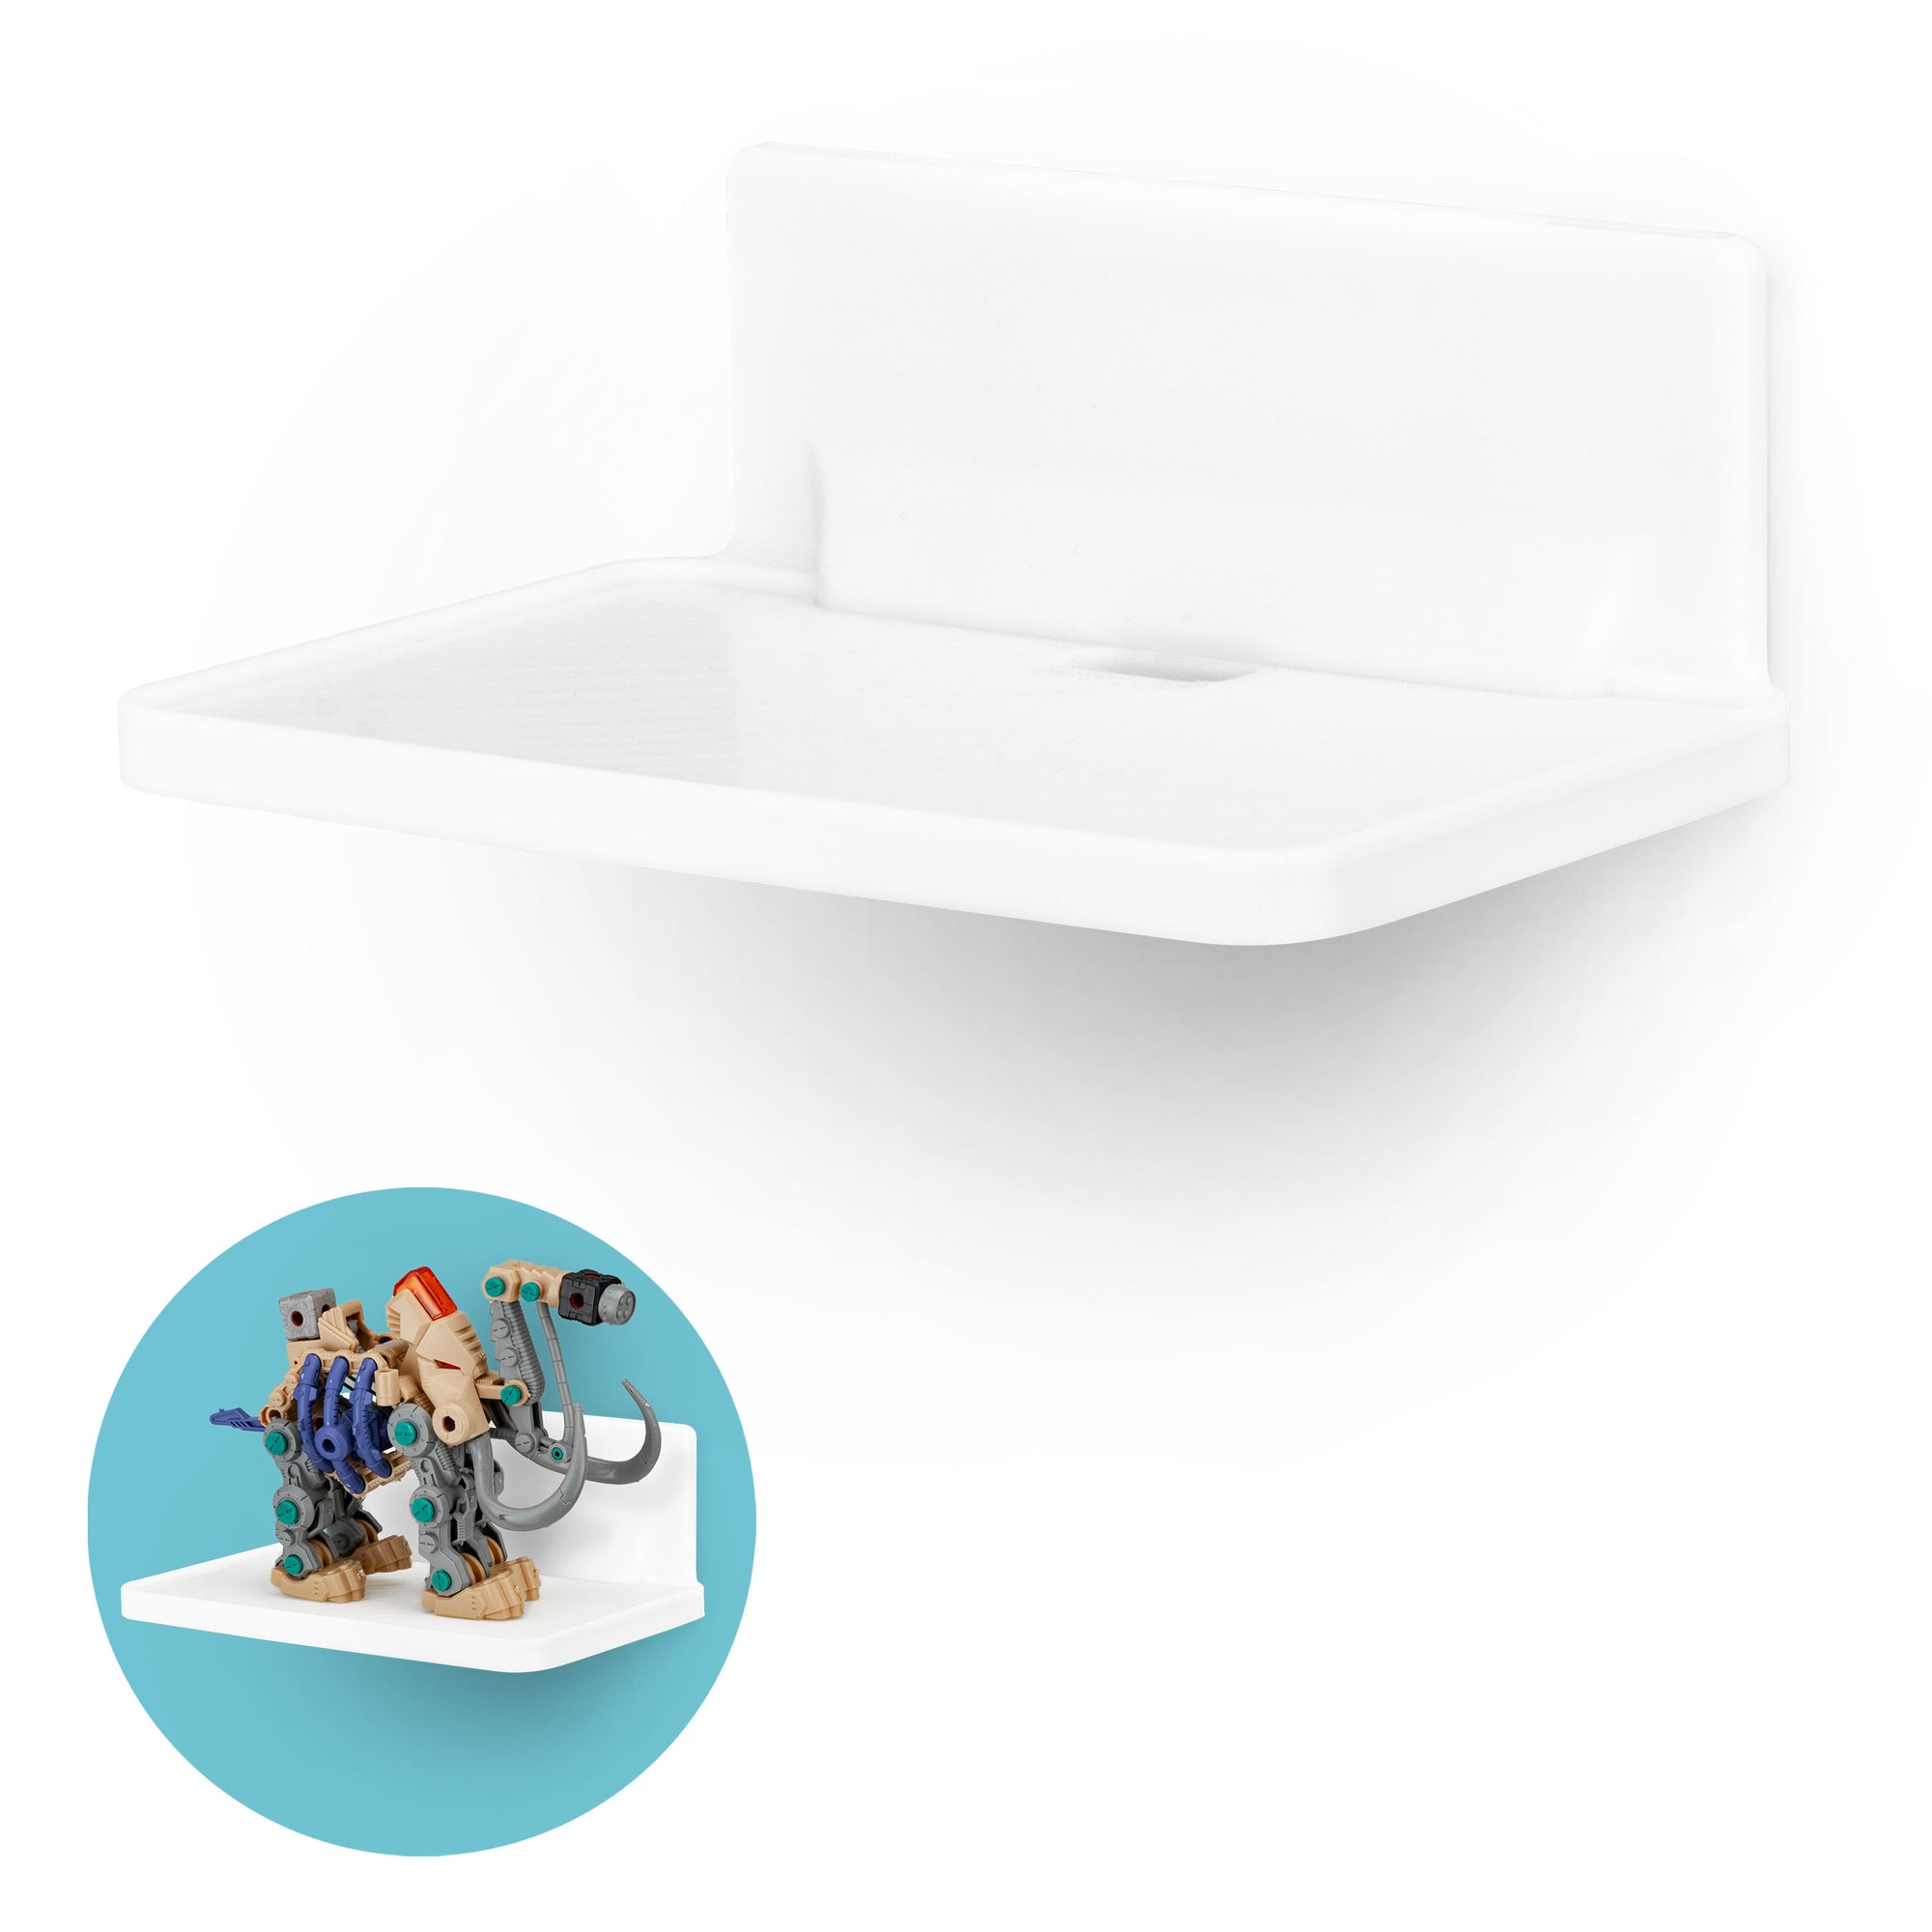 "Screwless Xtra-Wide Floating Shelf (200) w/ Cable Access for Cameras, Baby Monitors, Plants & More (172mm / 6.7"" x 105mm / 4.1"")"